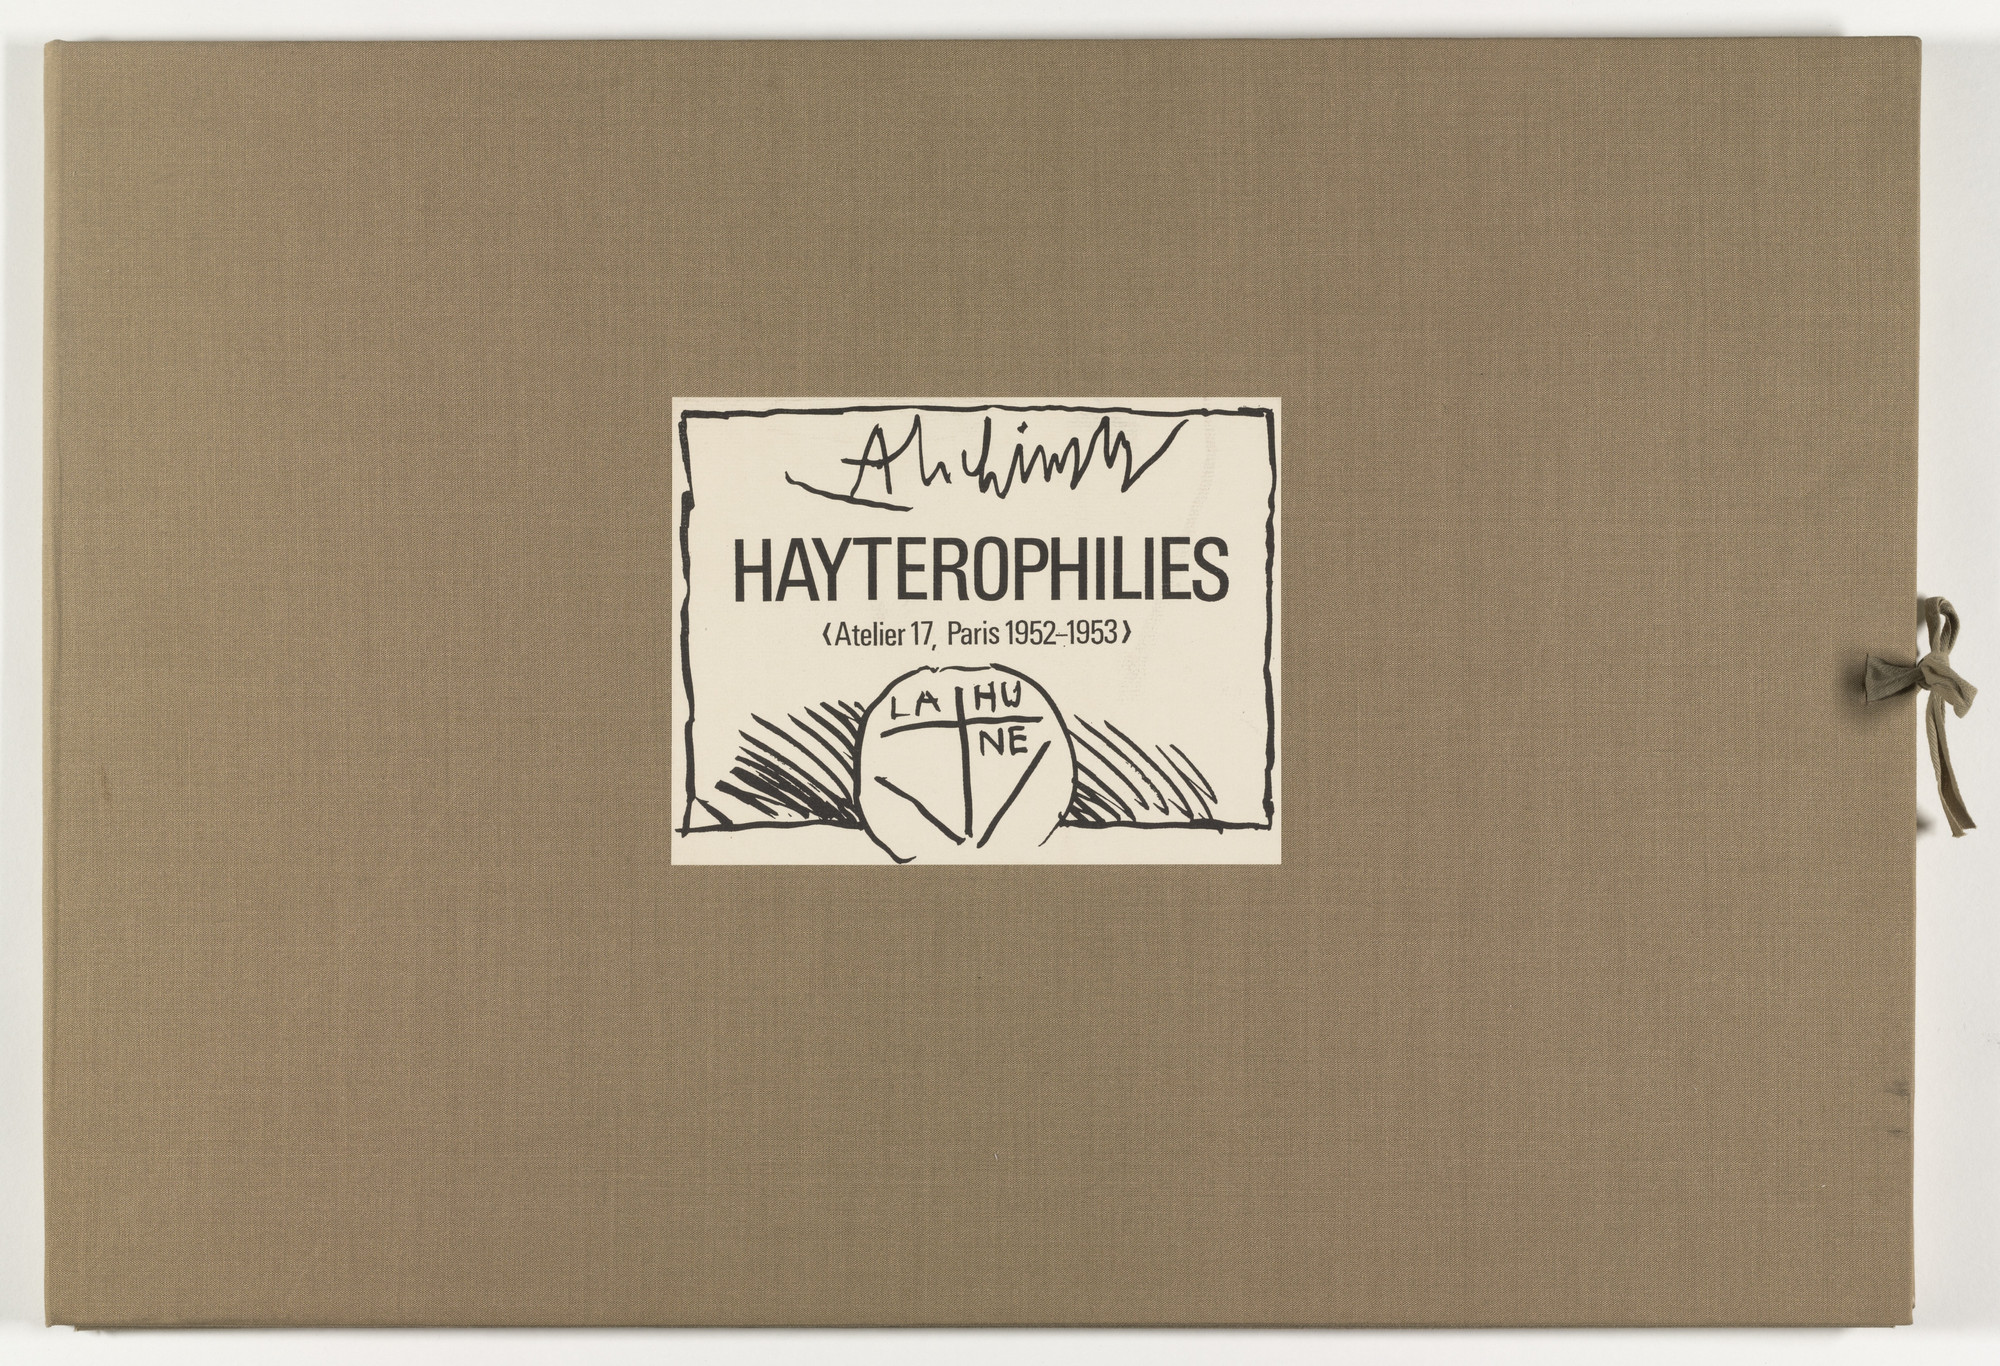 Pierre Alechinsky. Hayterophilies. 1968 (plates executed 1952-53)